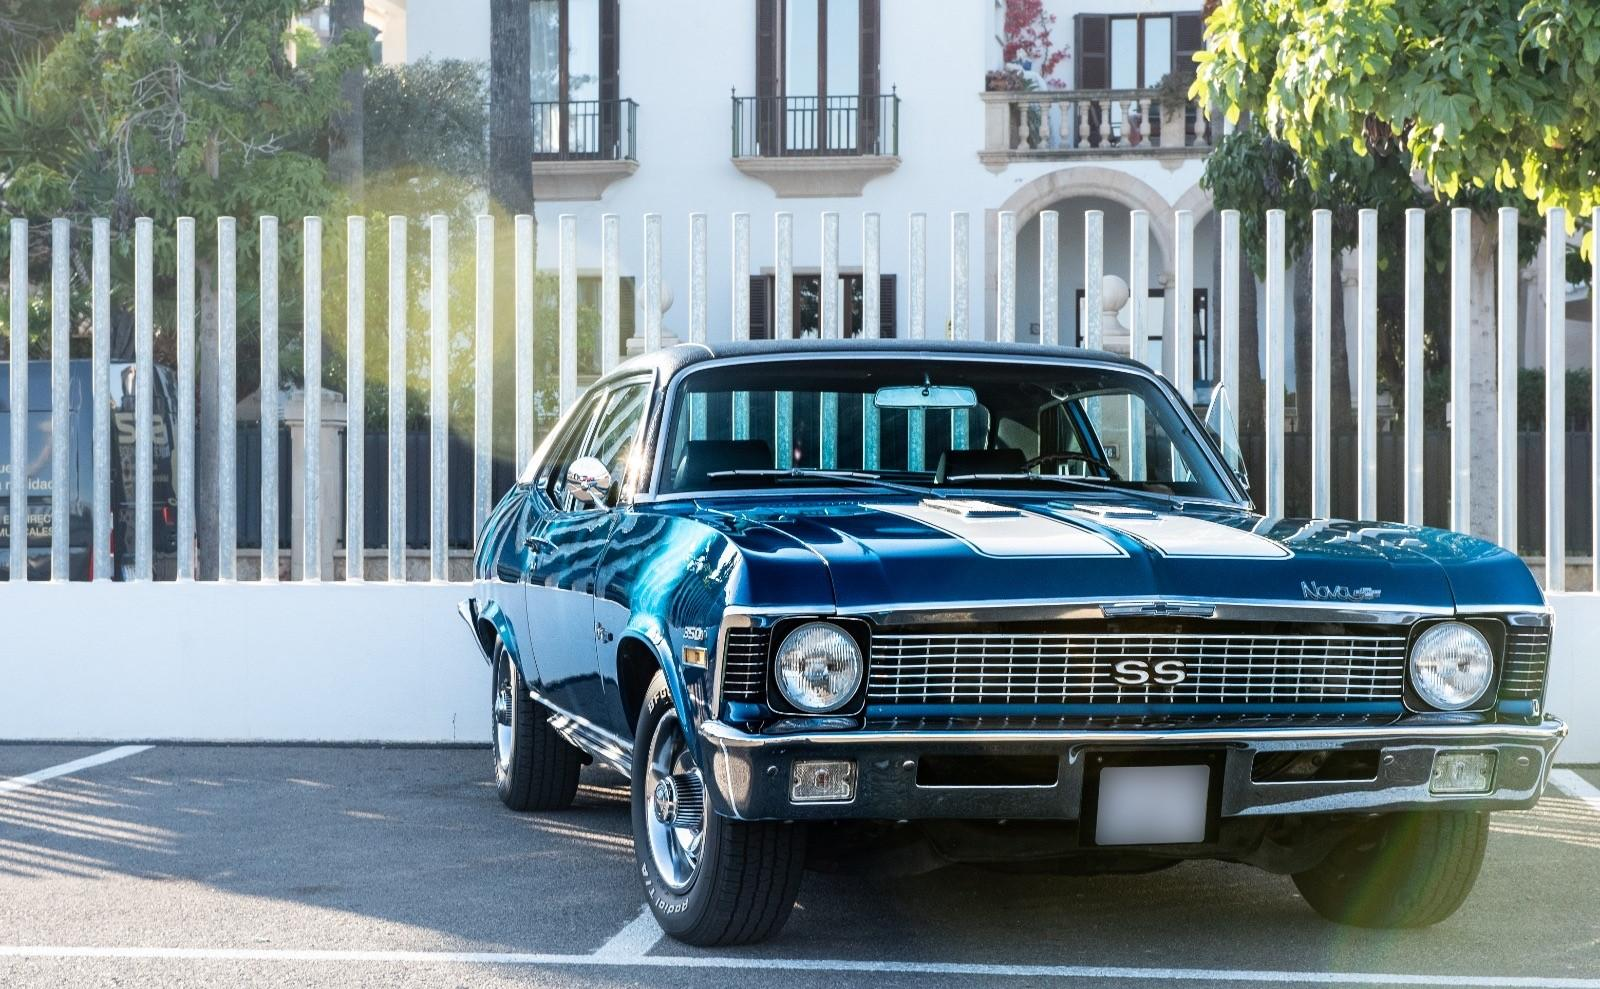 Chevy Nova SS, a fine musclecar from the '70s